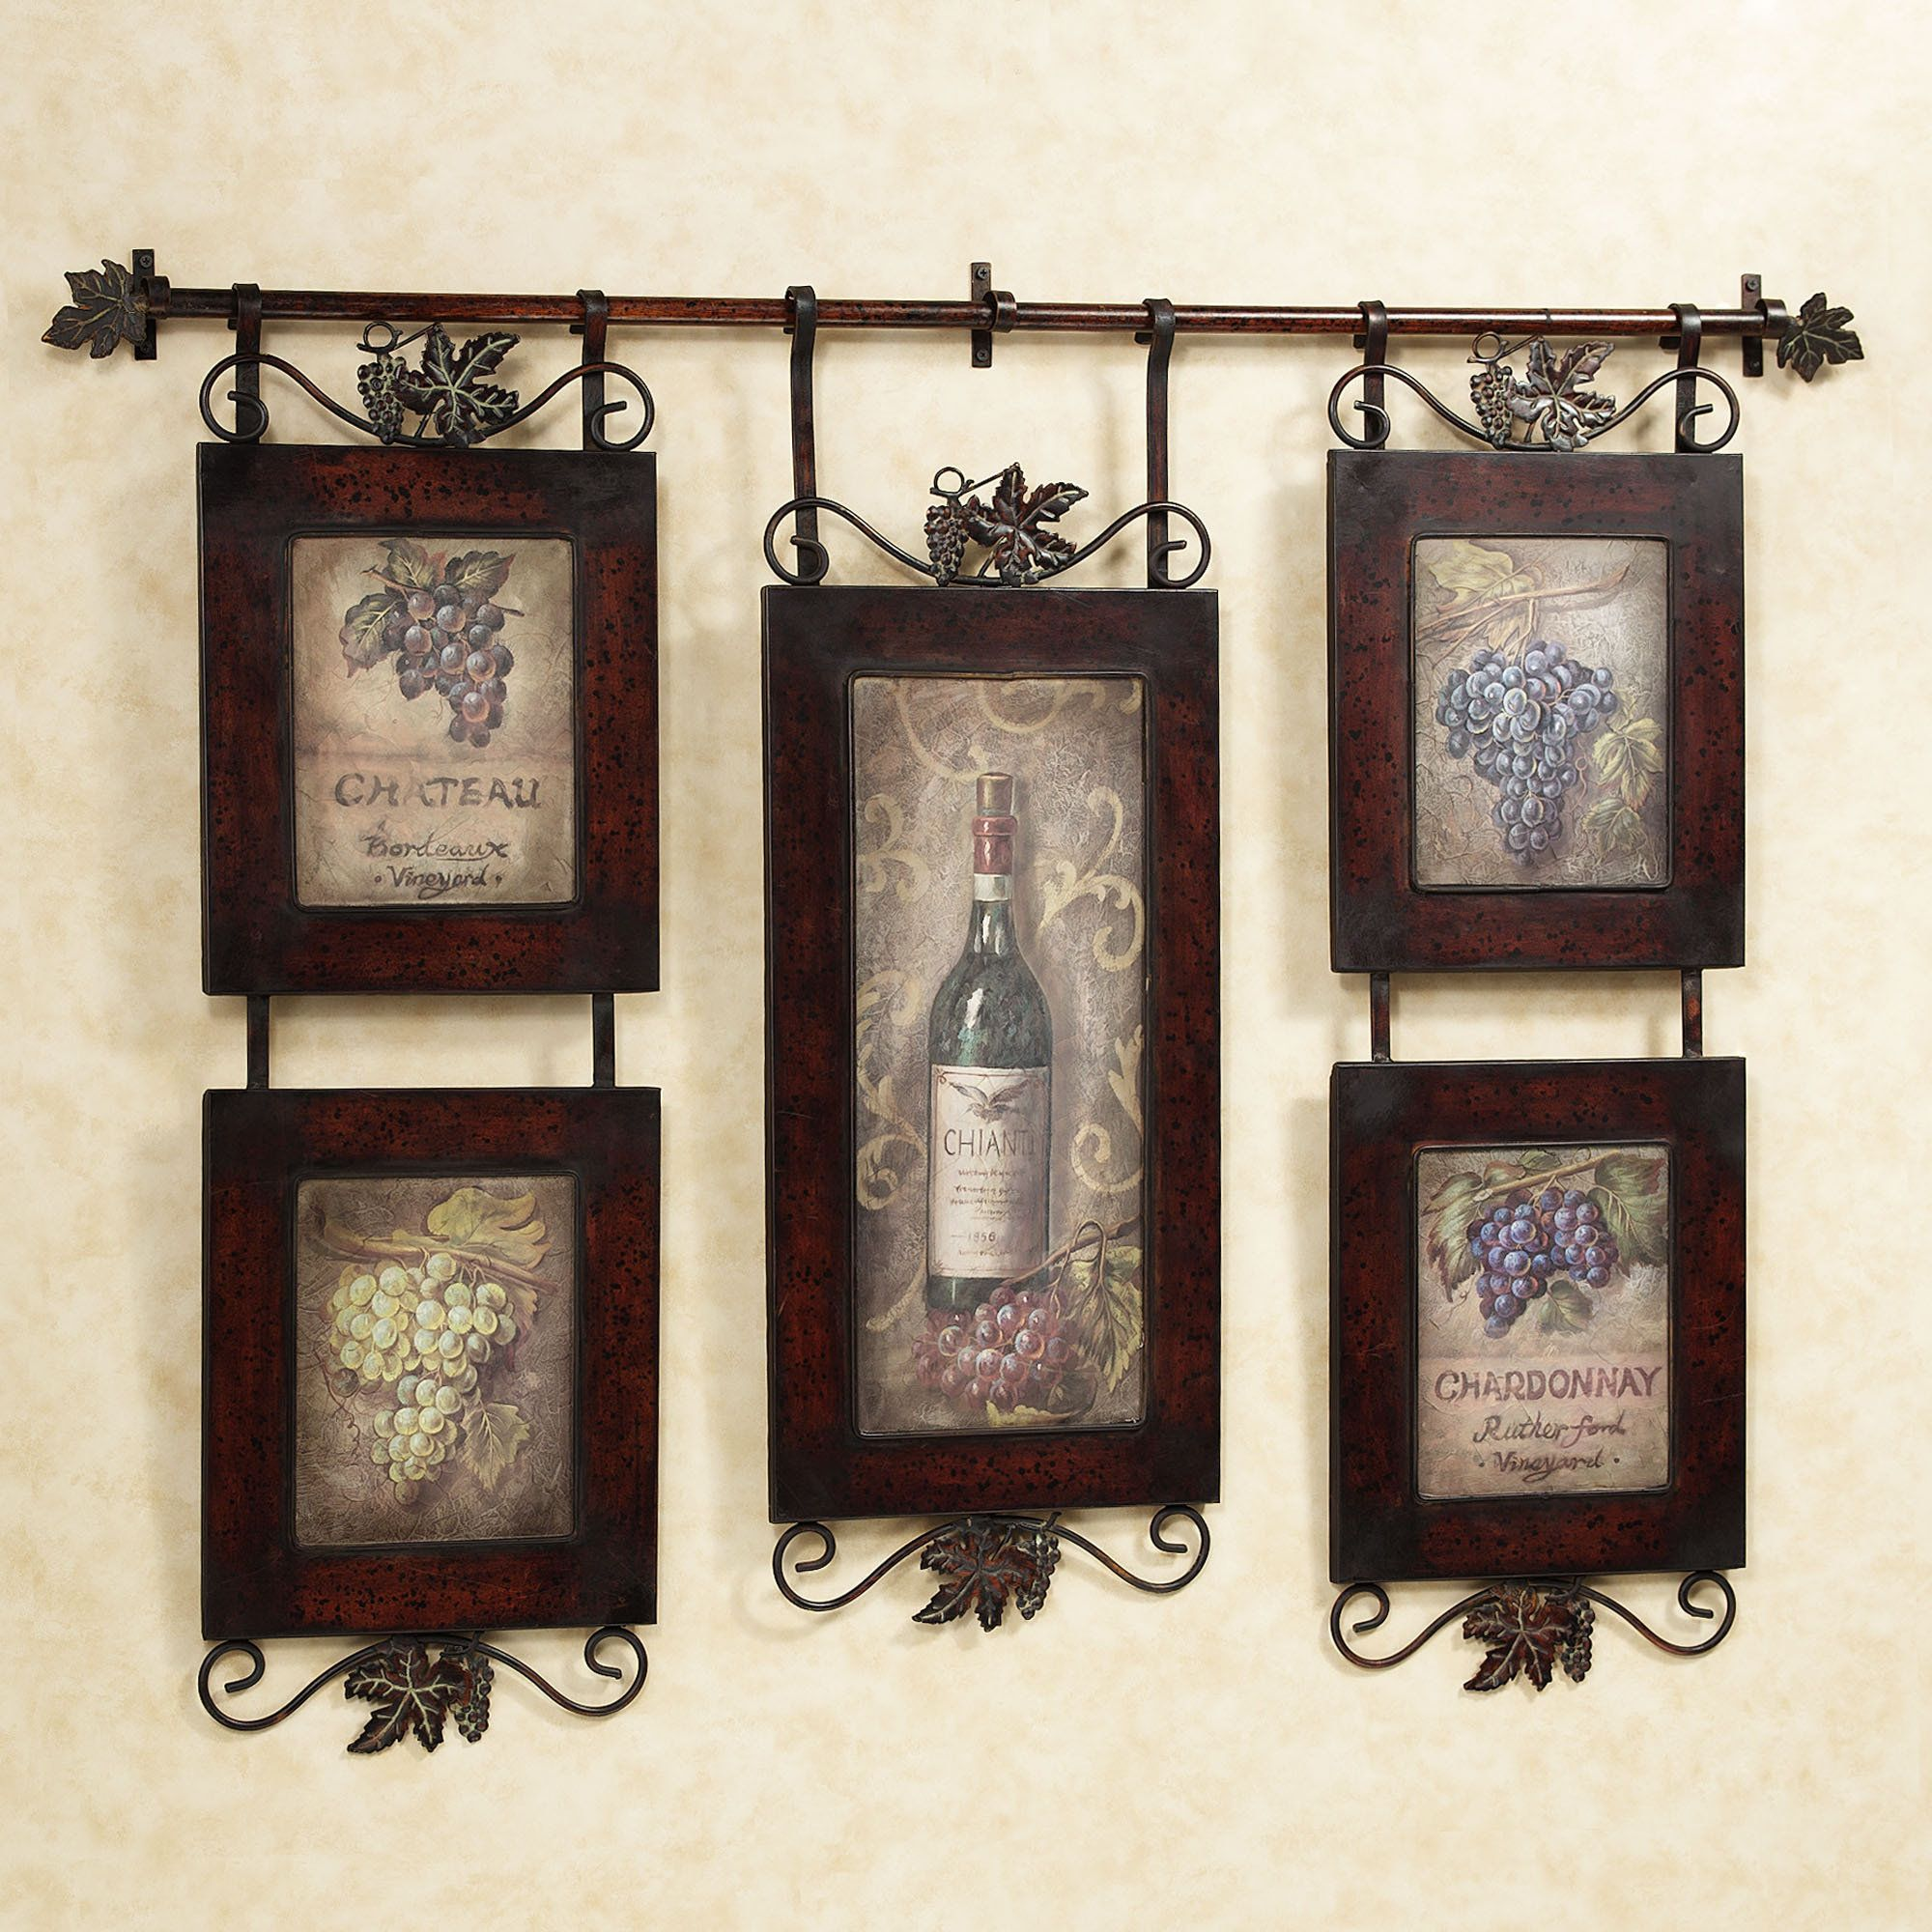 wall decorations for kitchen made mixer emilion wine art decor kitchens and walls